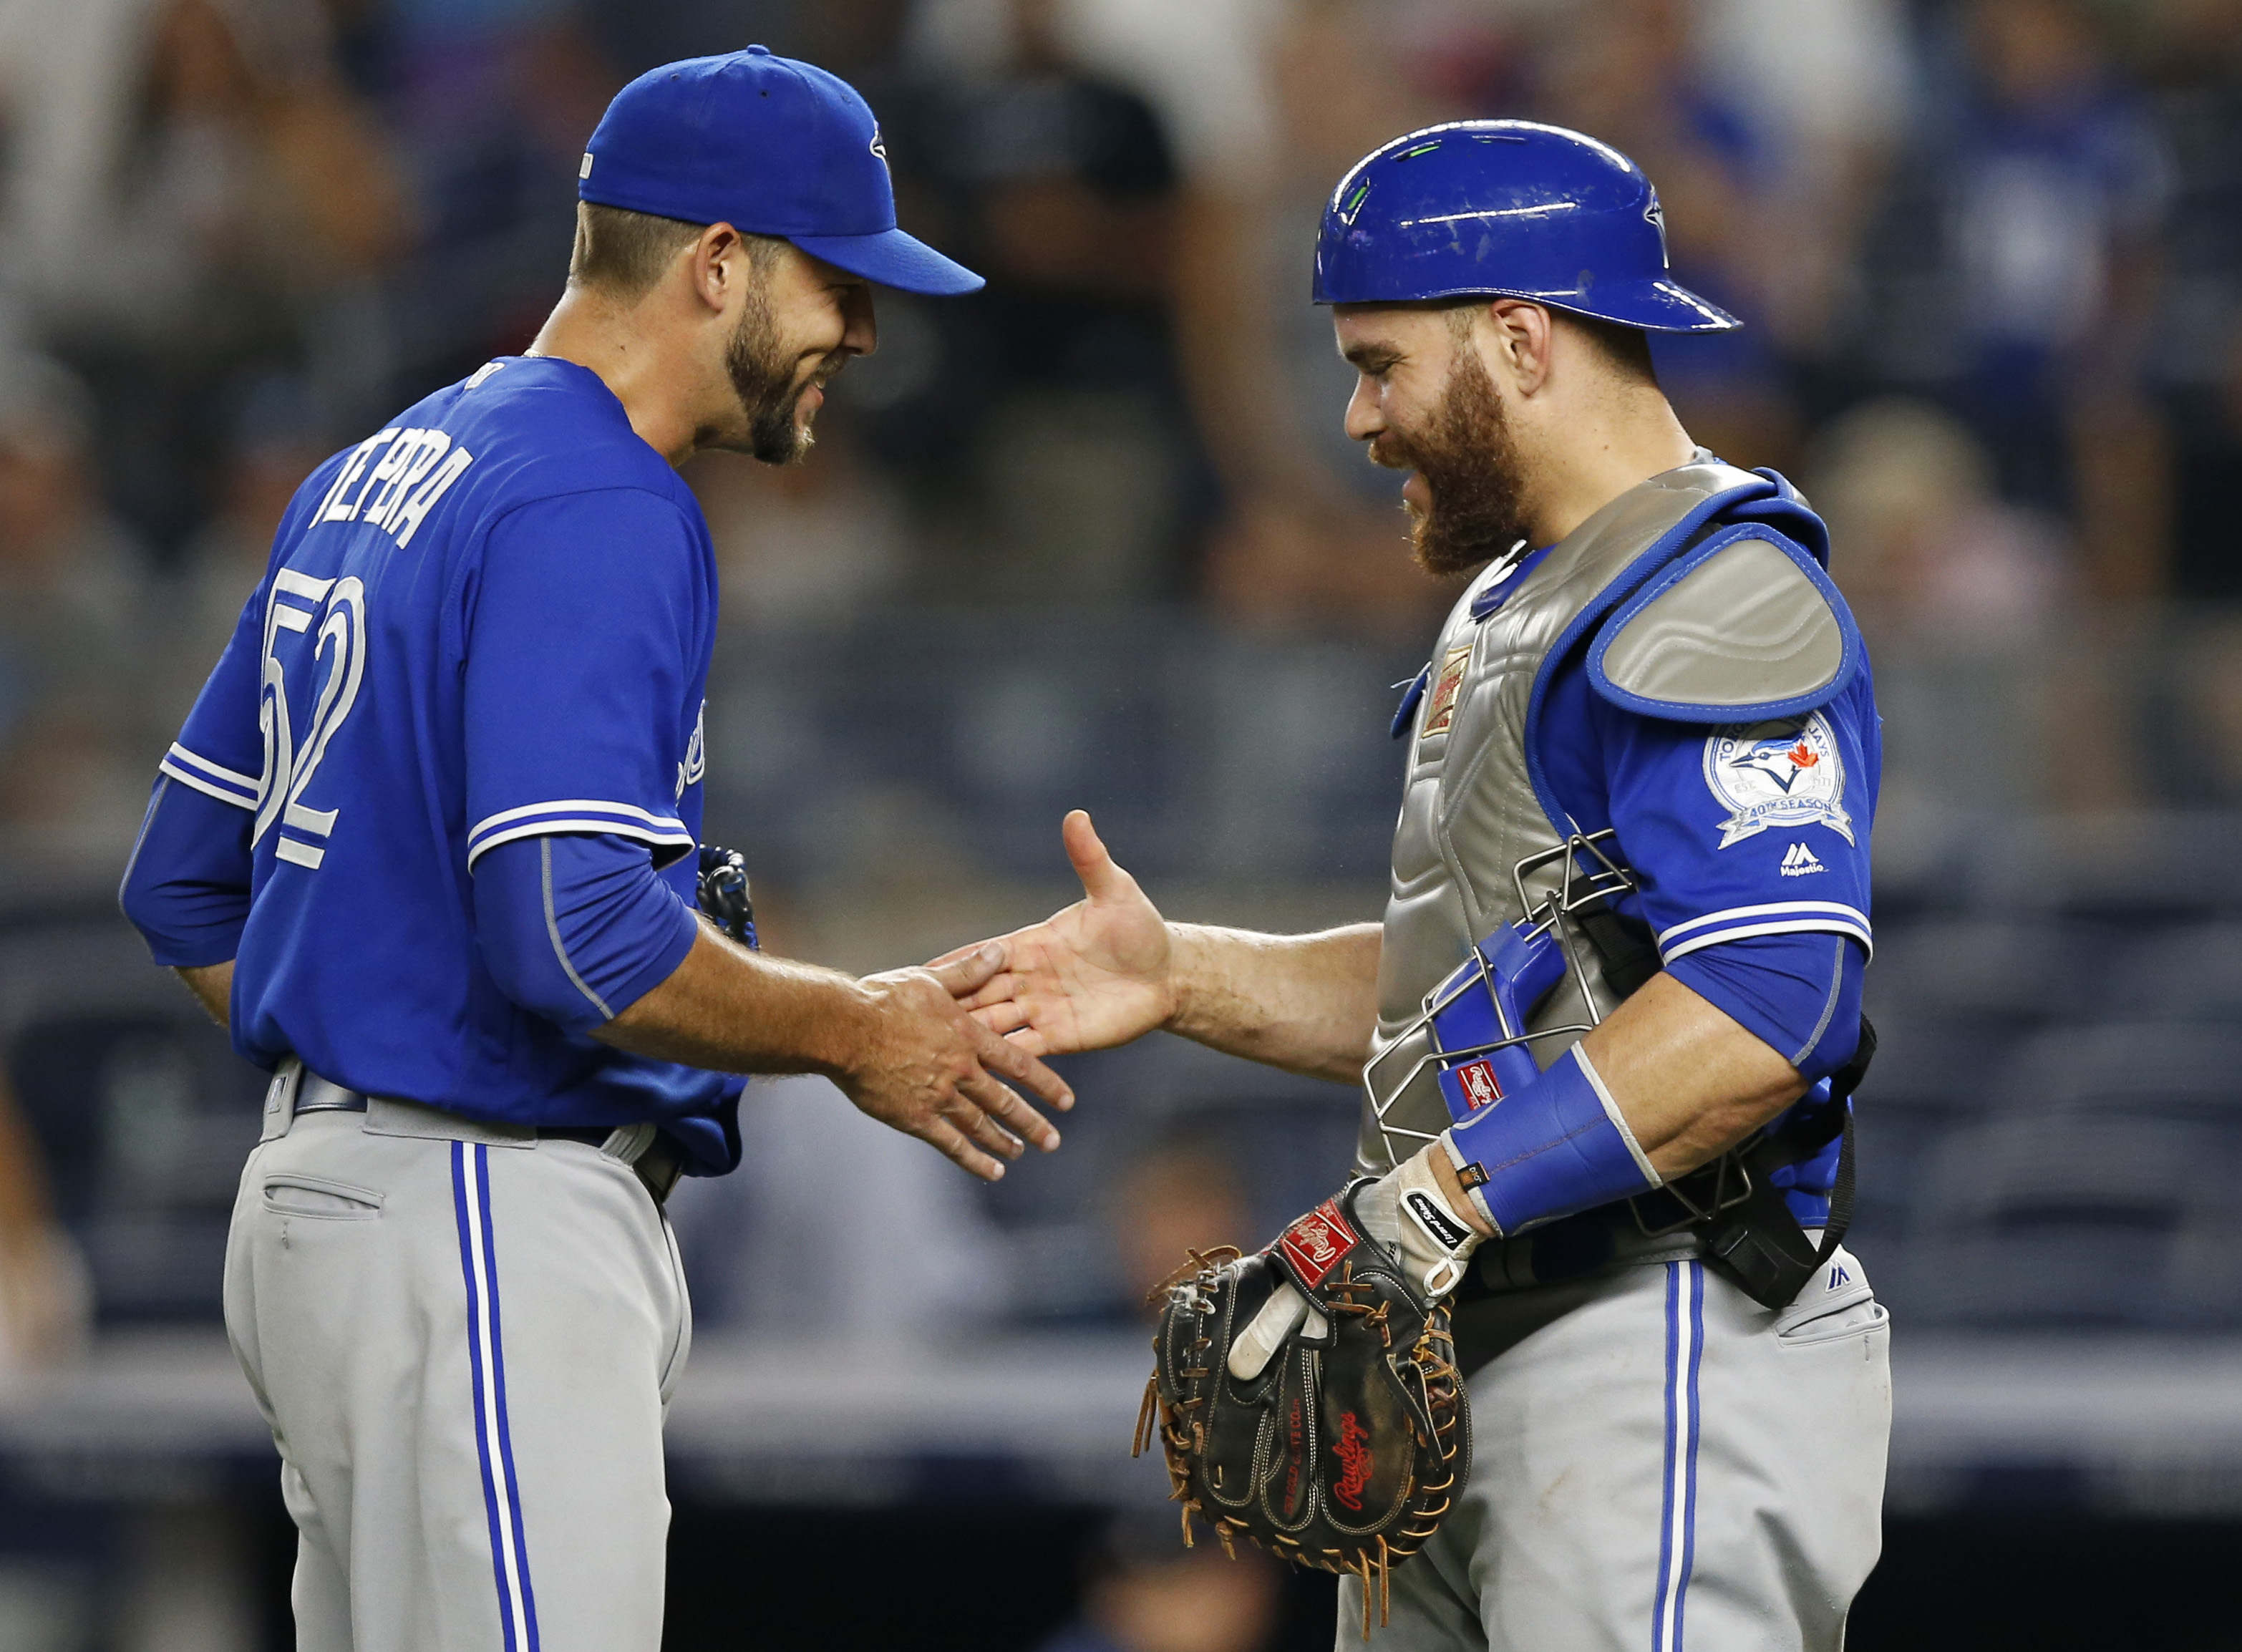 Toronto Blue Jays relief pitcher Ryan Tepera, left, and catcher Russell Martin congratulate one another after Toronto came from behind to defeat the New York Yankees 12-6 in a baseball game in New York, Tuesday, Aug. 16, 2016. Martin hit a two-run home ru